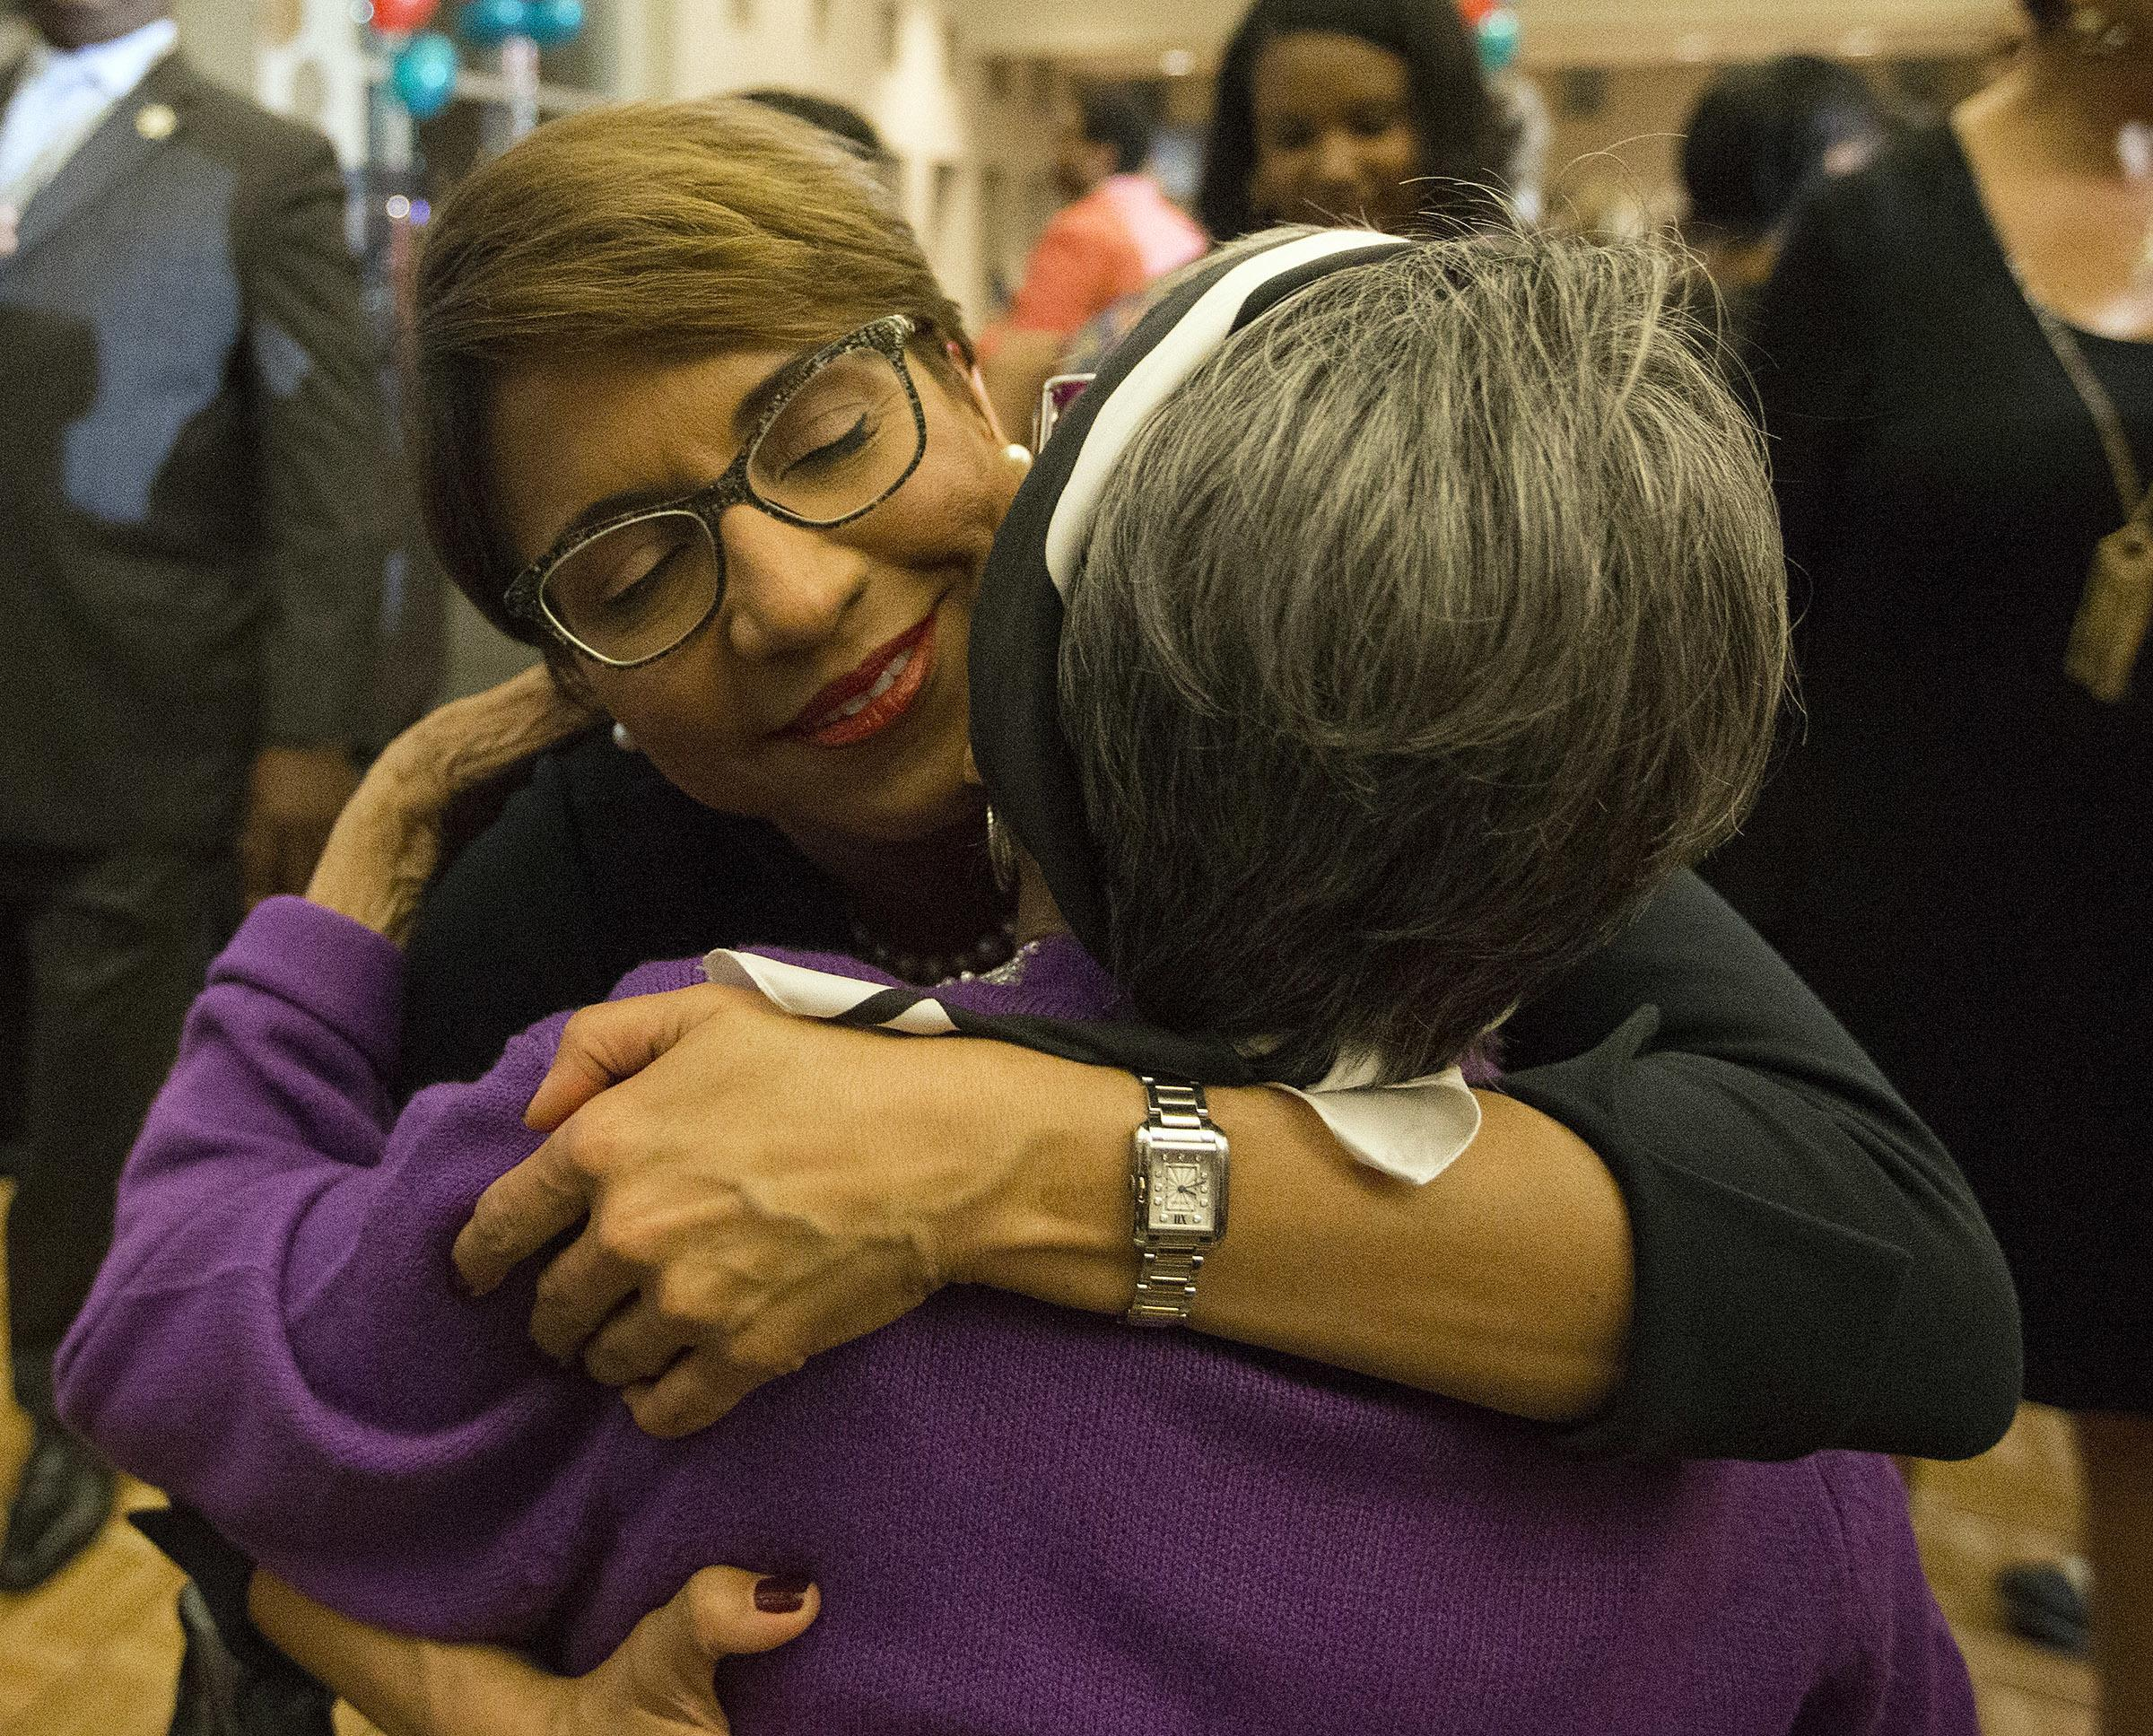 Former municipal Judge Desiree Charbonnet hugs her mother, Gloria Charbonnet, after she conceded to LaToya Cantrell in the New Orleans mayoral race at the Sheraton Hotel in New Orleans, Saturday, Nov. 18, 2017. (David Grunfeld/NOLA.com The Times-Picayune via AP)